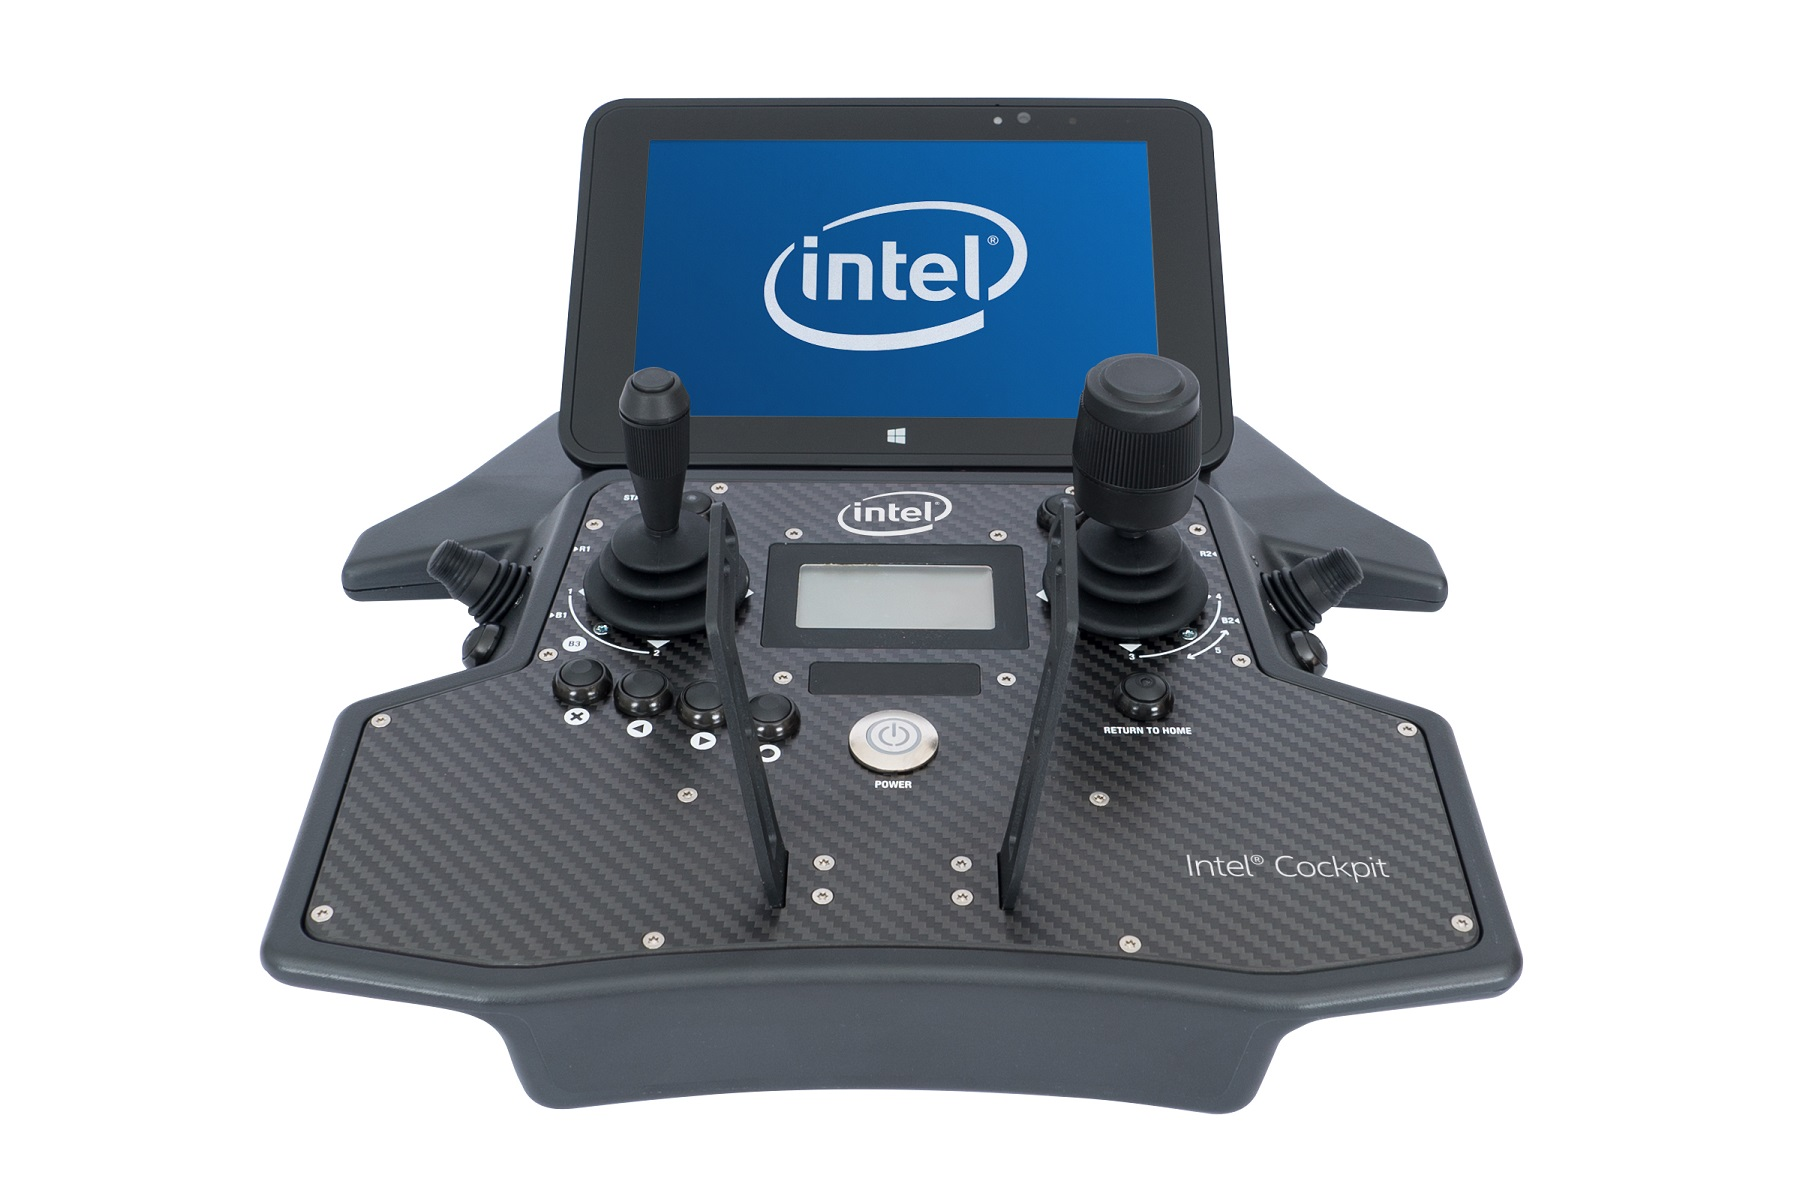 Image result for Intel Falcon 8+ Drone